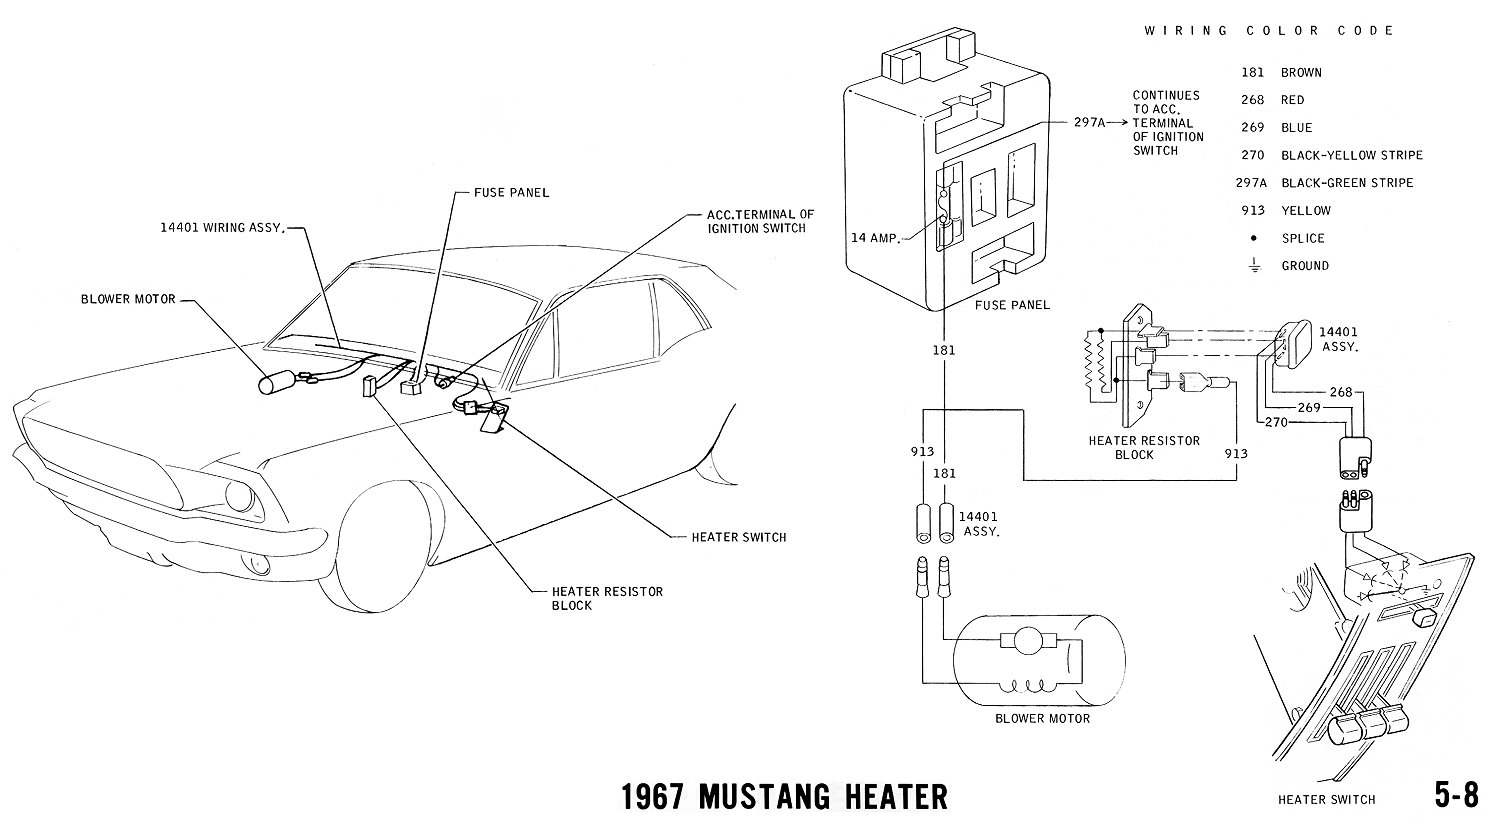 1967 Fuse Box Wiring Diagram Mustang Diagrams Simple Ktm 520 Free Picture Schematic 67 Ford Data